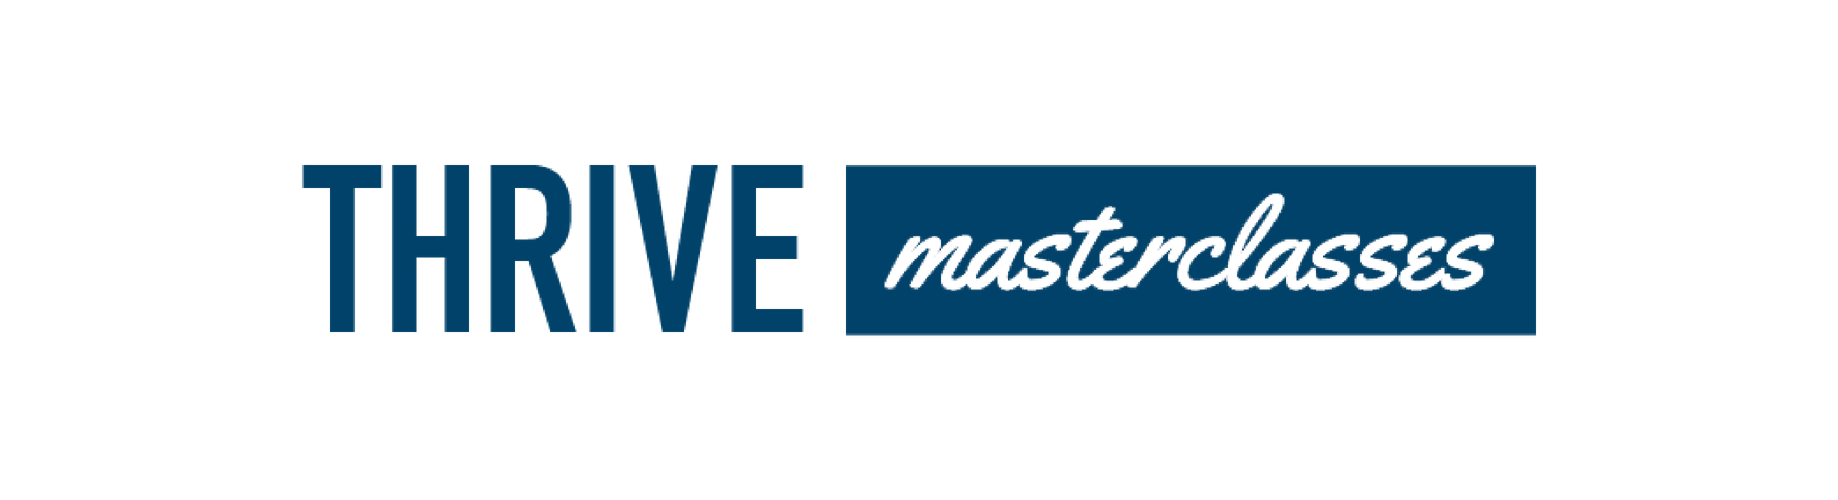 THRIVE-masterclasses_icon.png